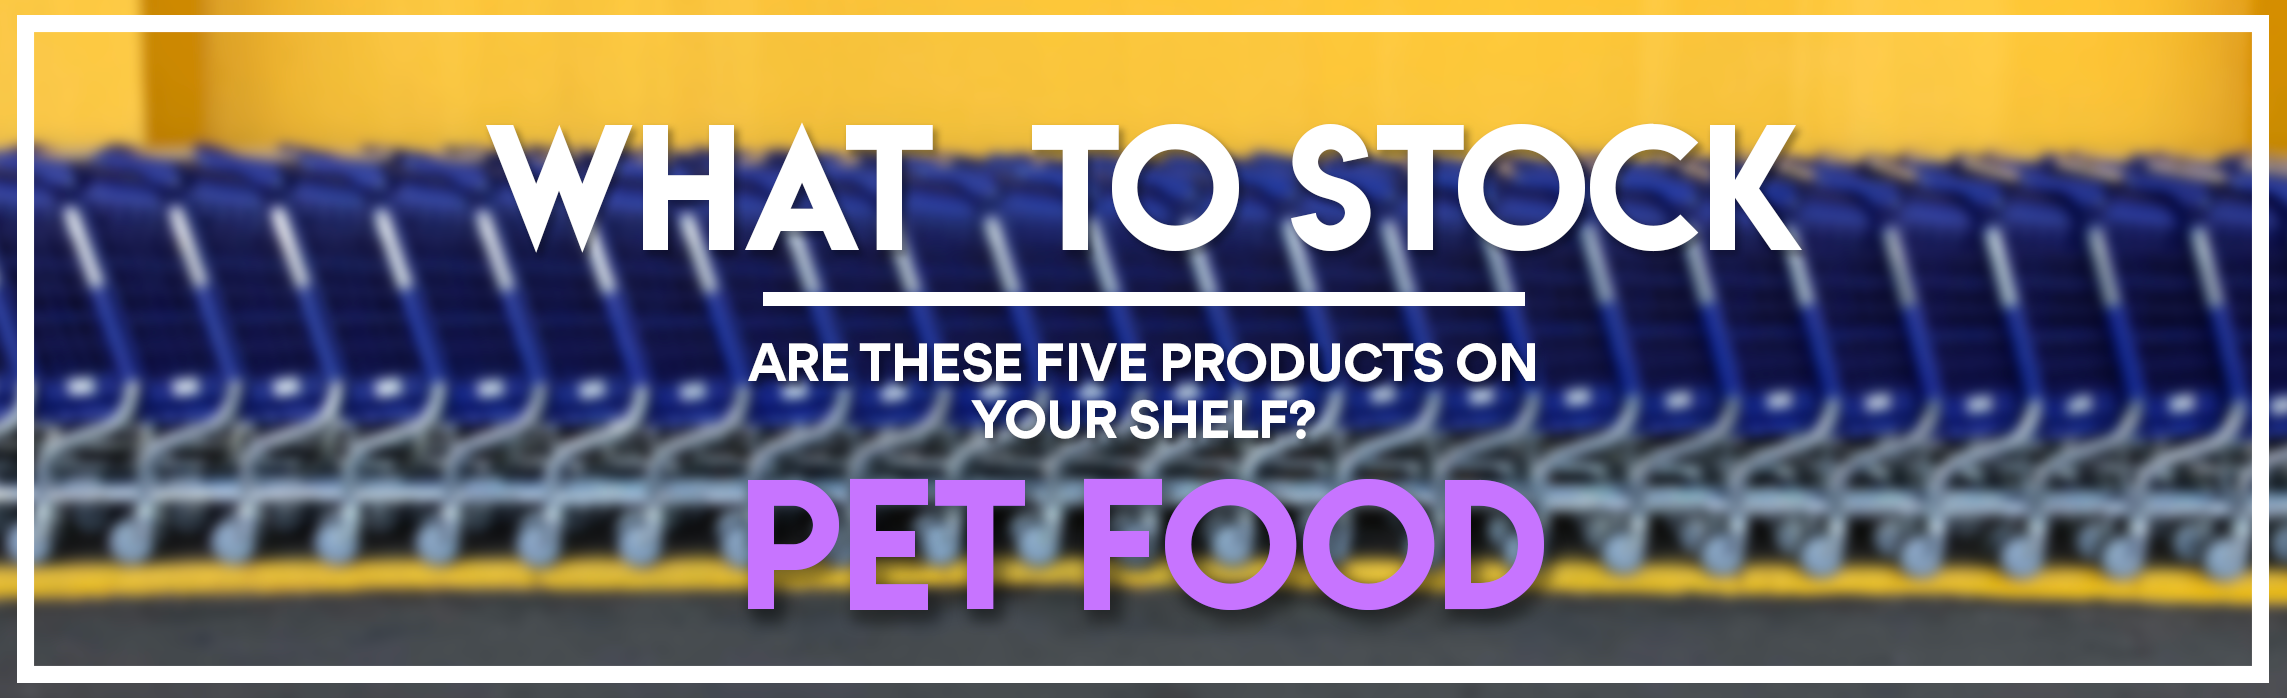 WHAT TO STOCK - PET FOOD